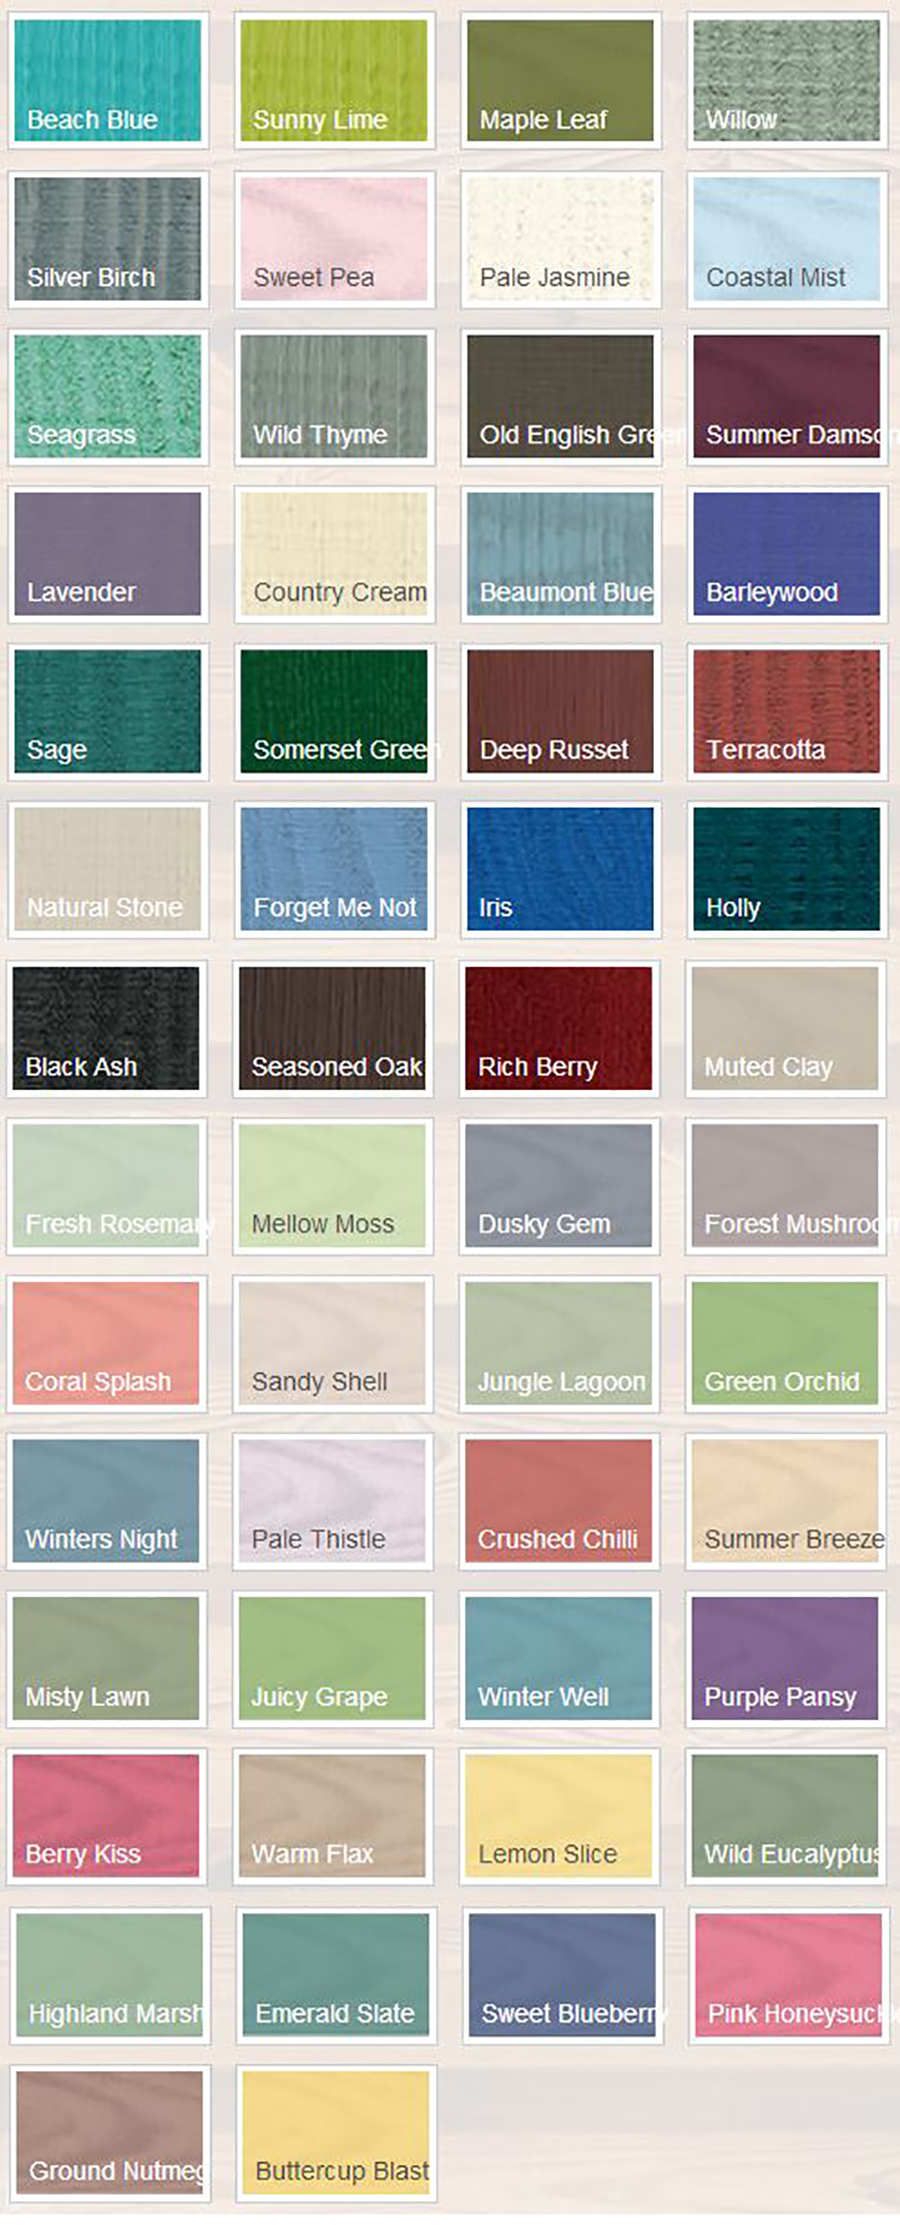 S G Bailey Paints Ltd Cuprinol Trade Garden Shades